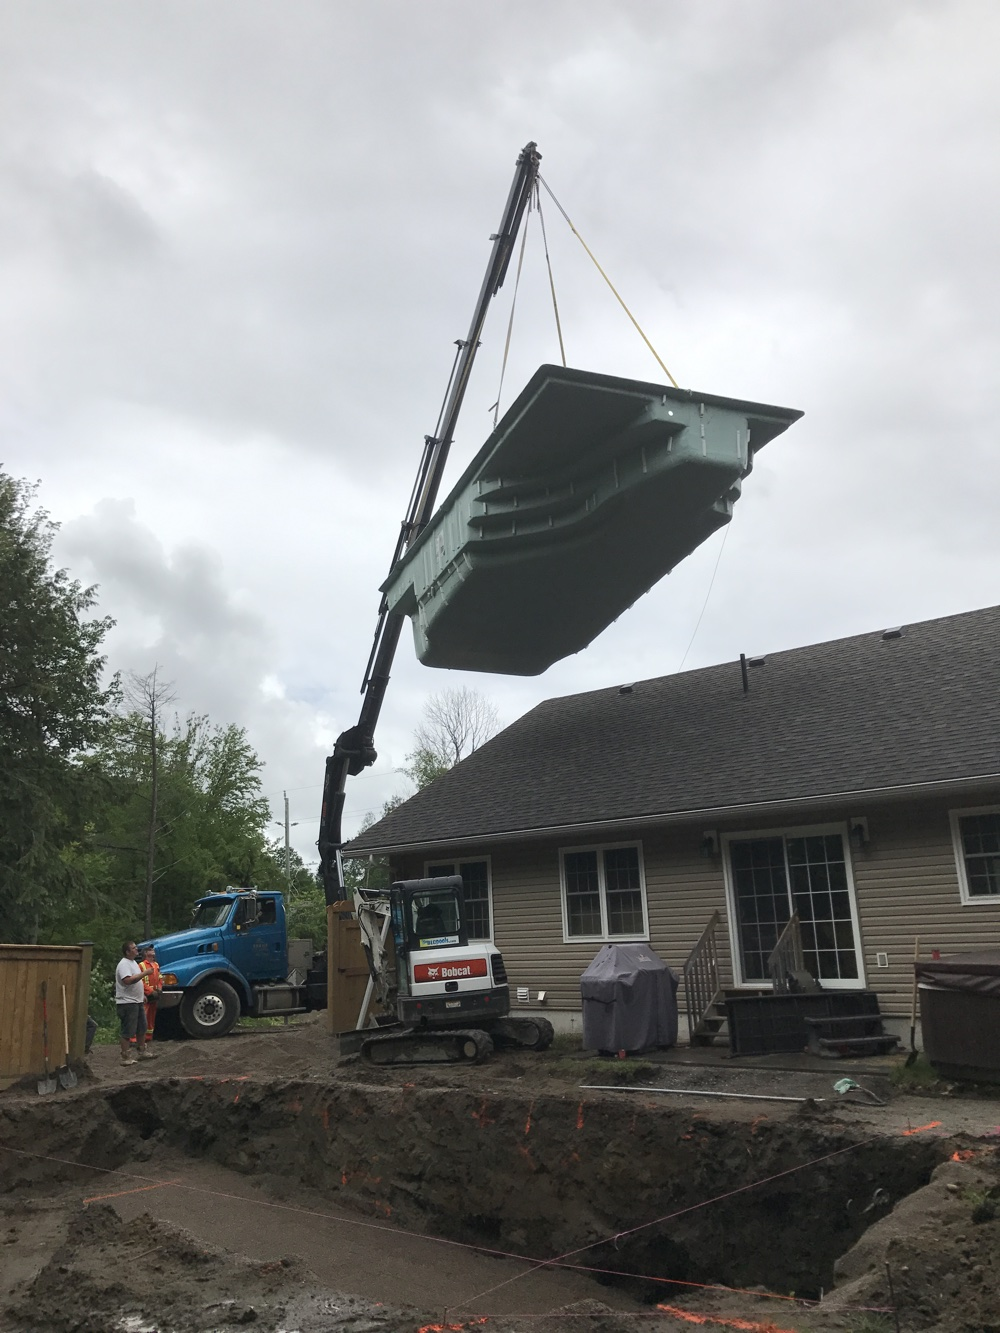 Crane lifting a fiberglass pool over a house in Barrie, Ontario